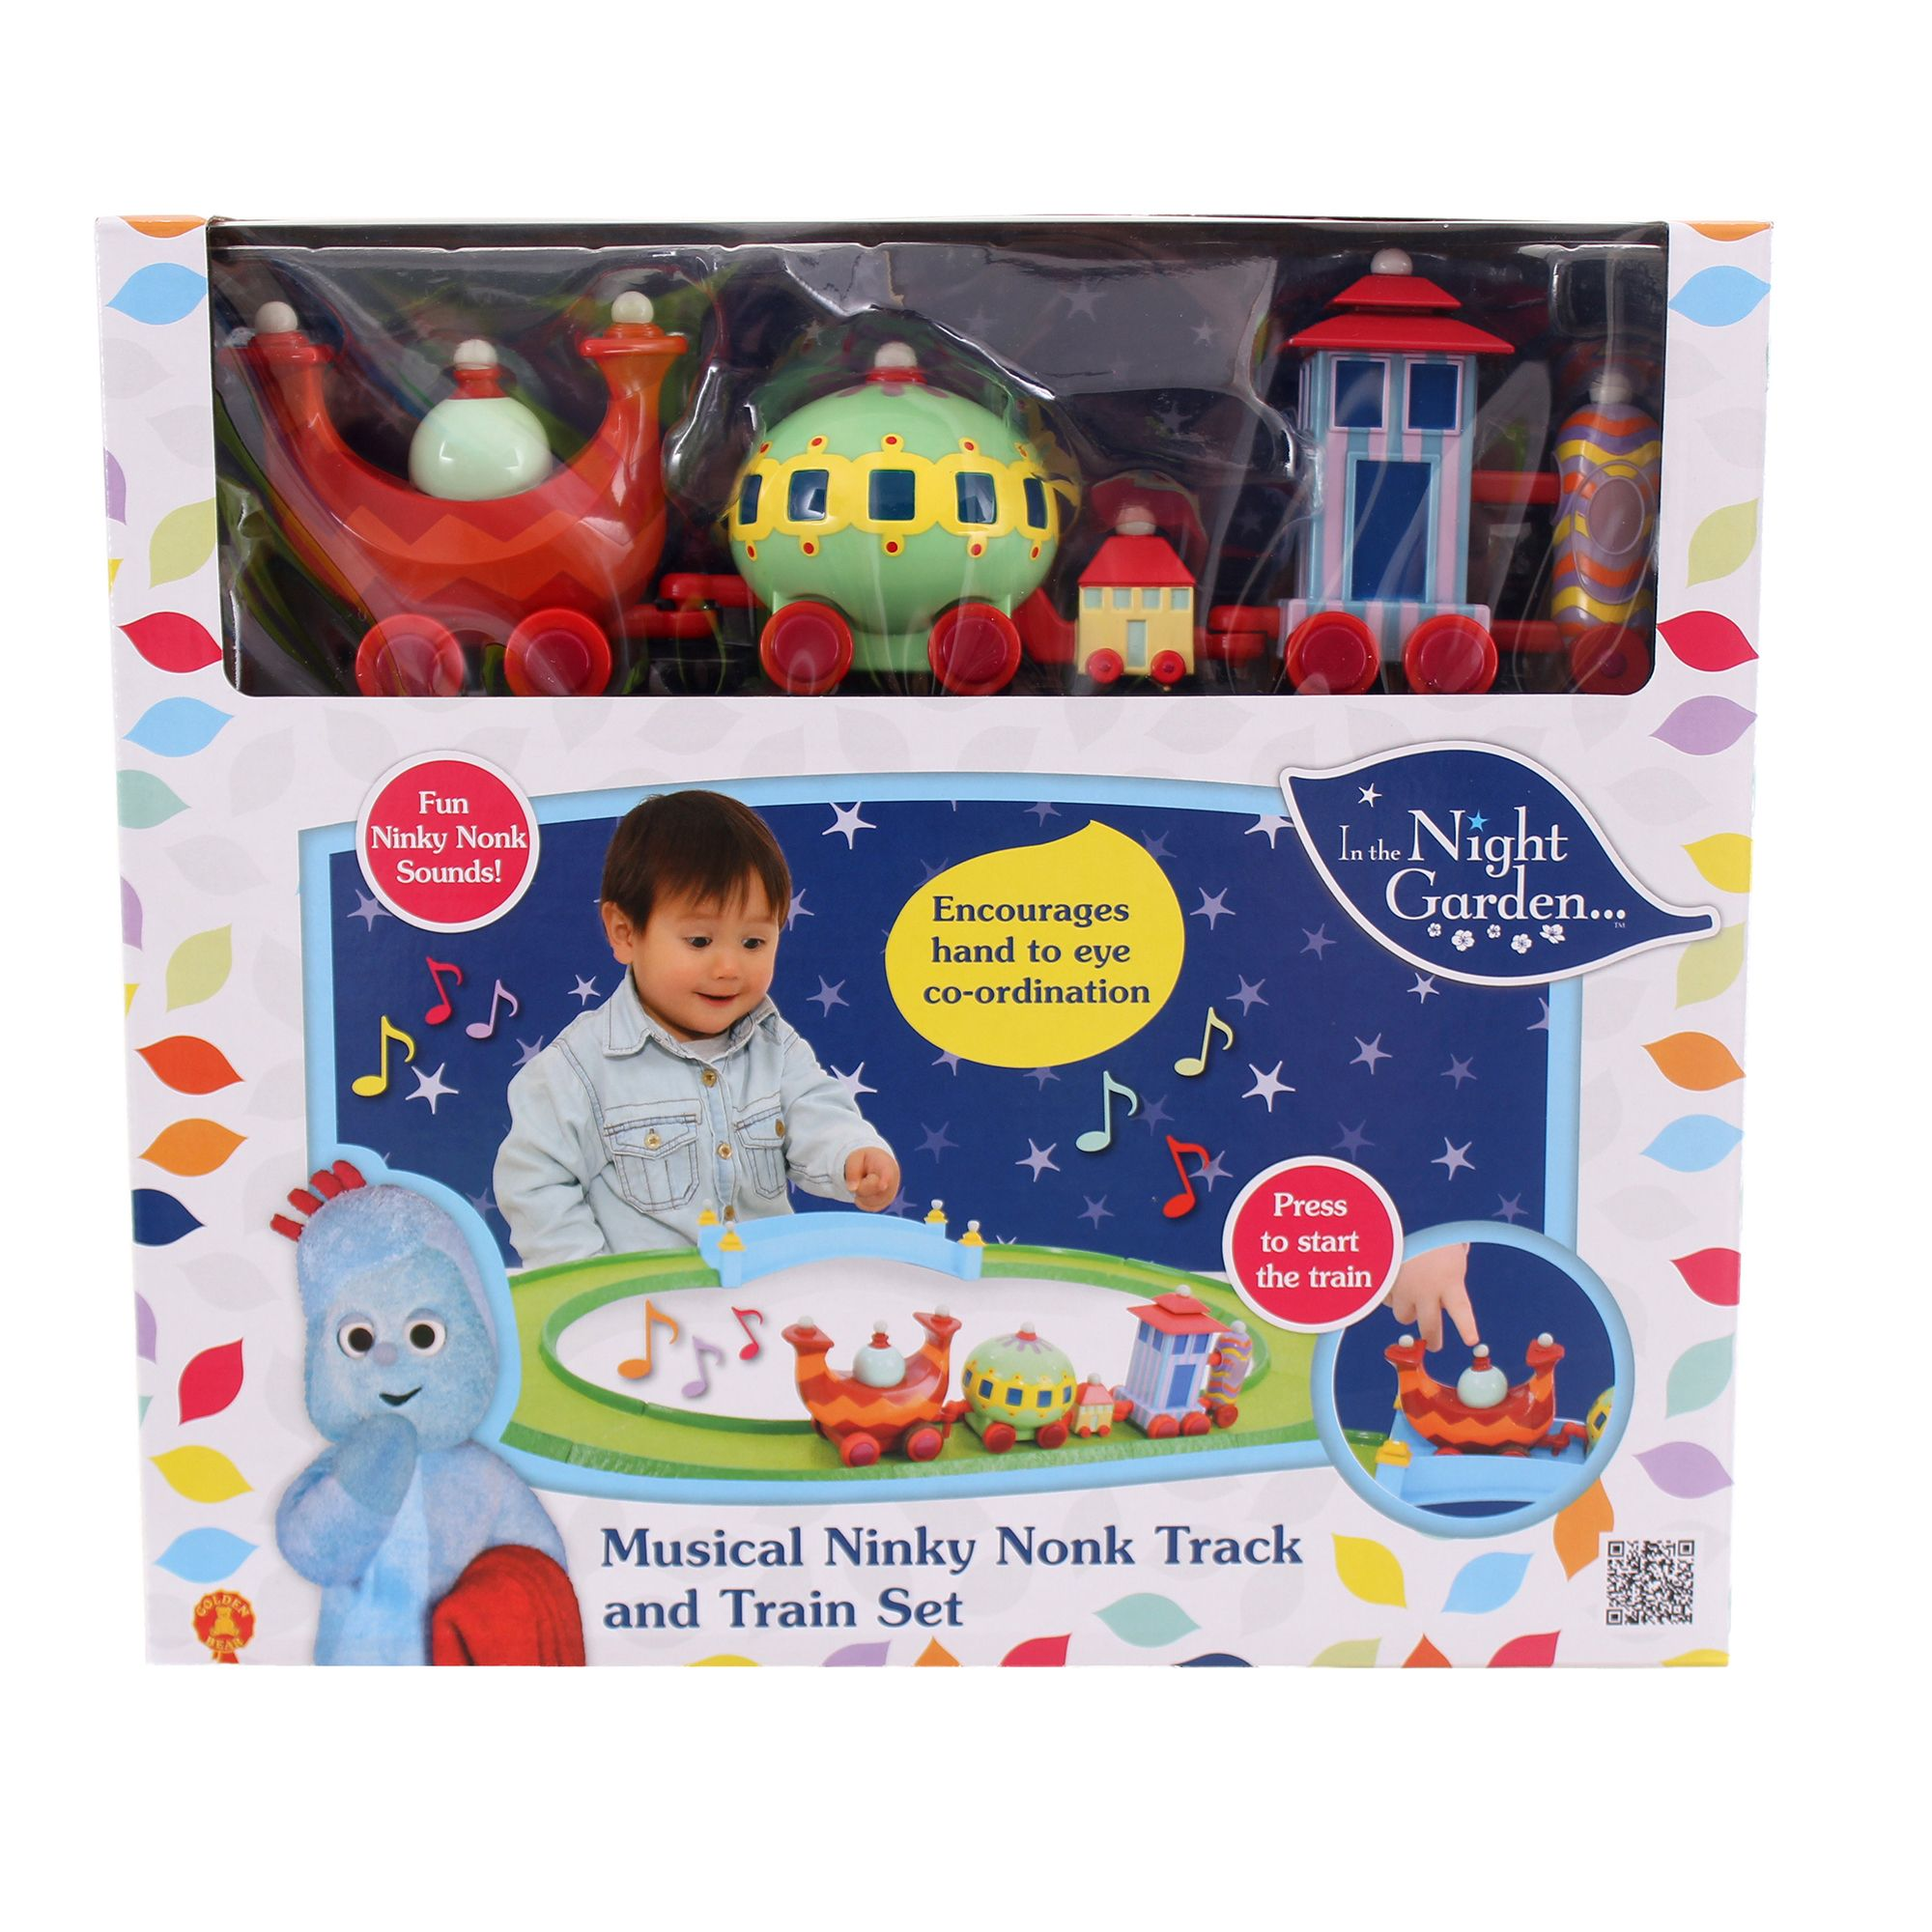 In the Night Garden Musical Ninky Nonk Train & Track Set